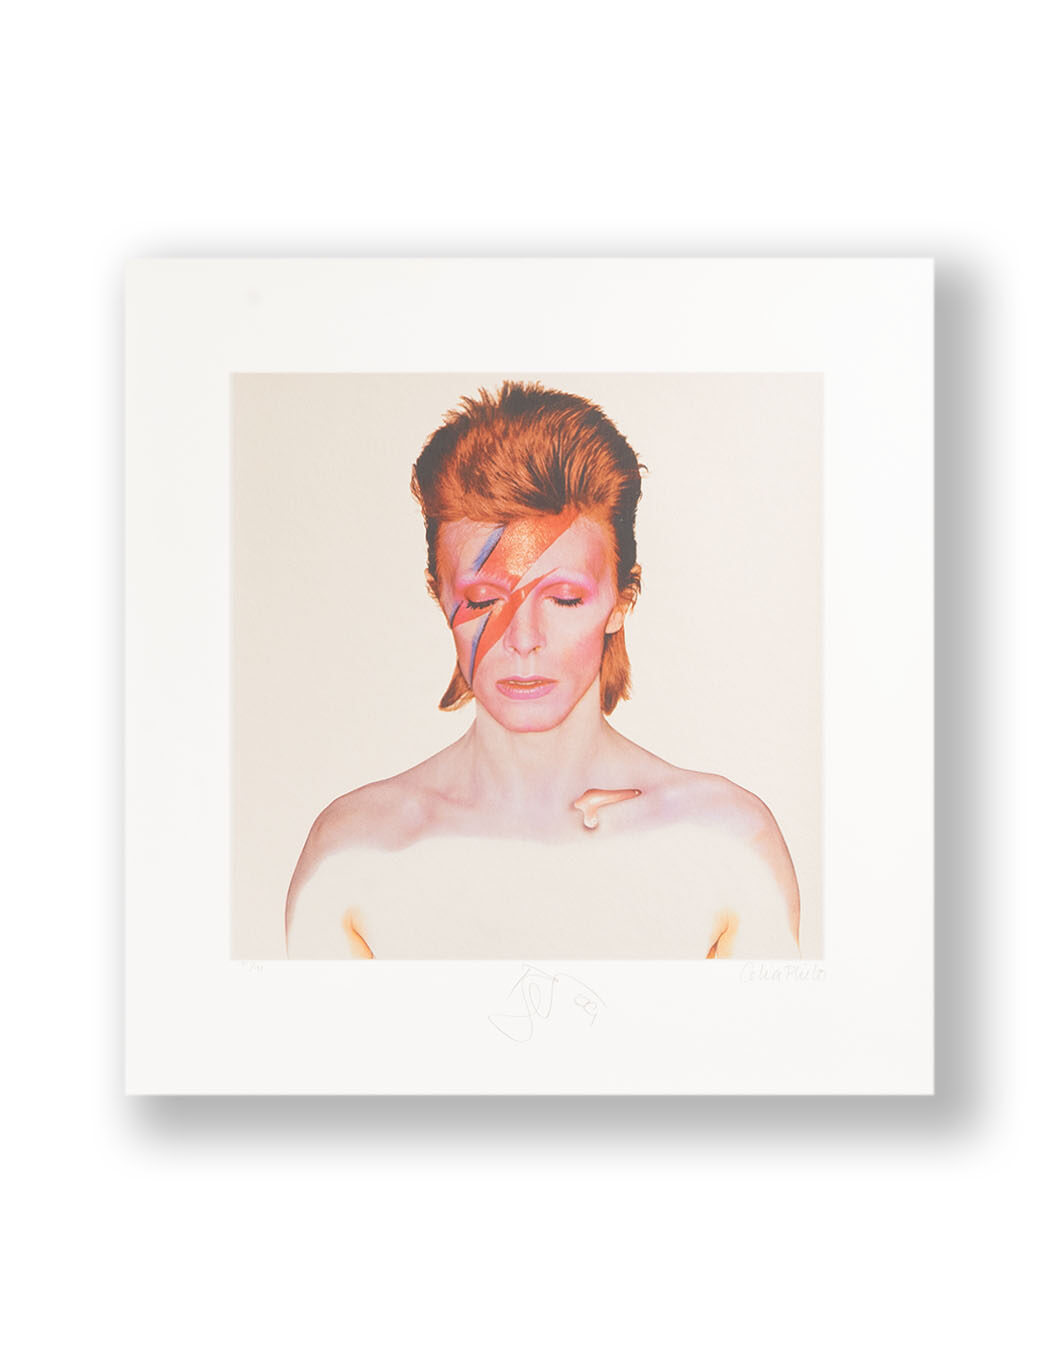 SIGNED BY DAVID BOWIE AND CELIA PHILO